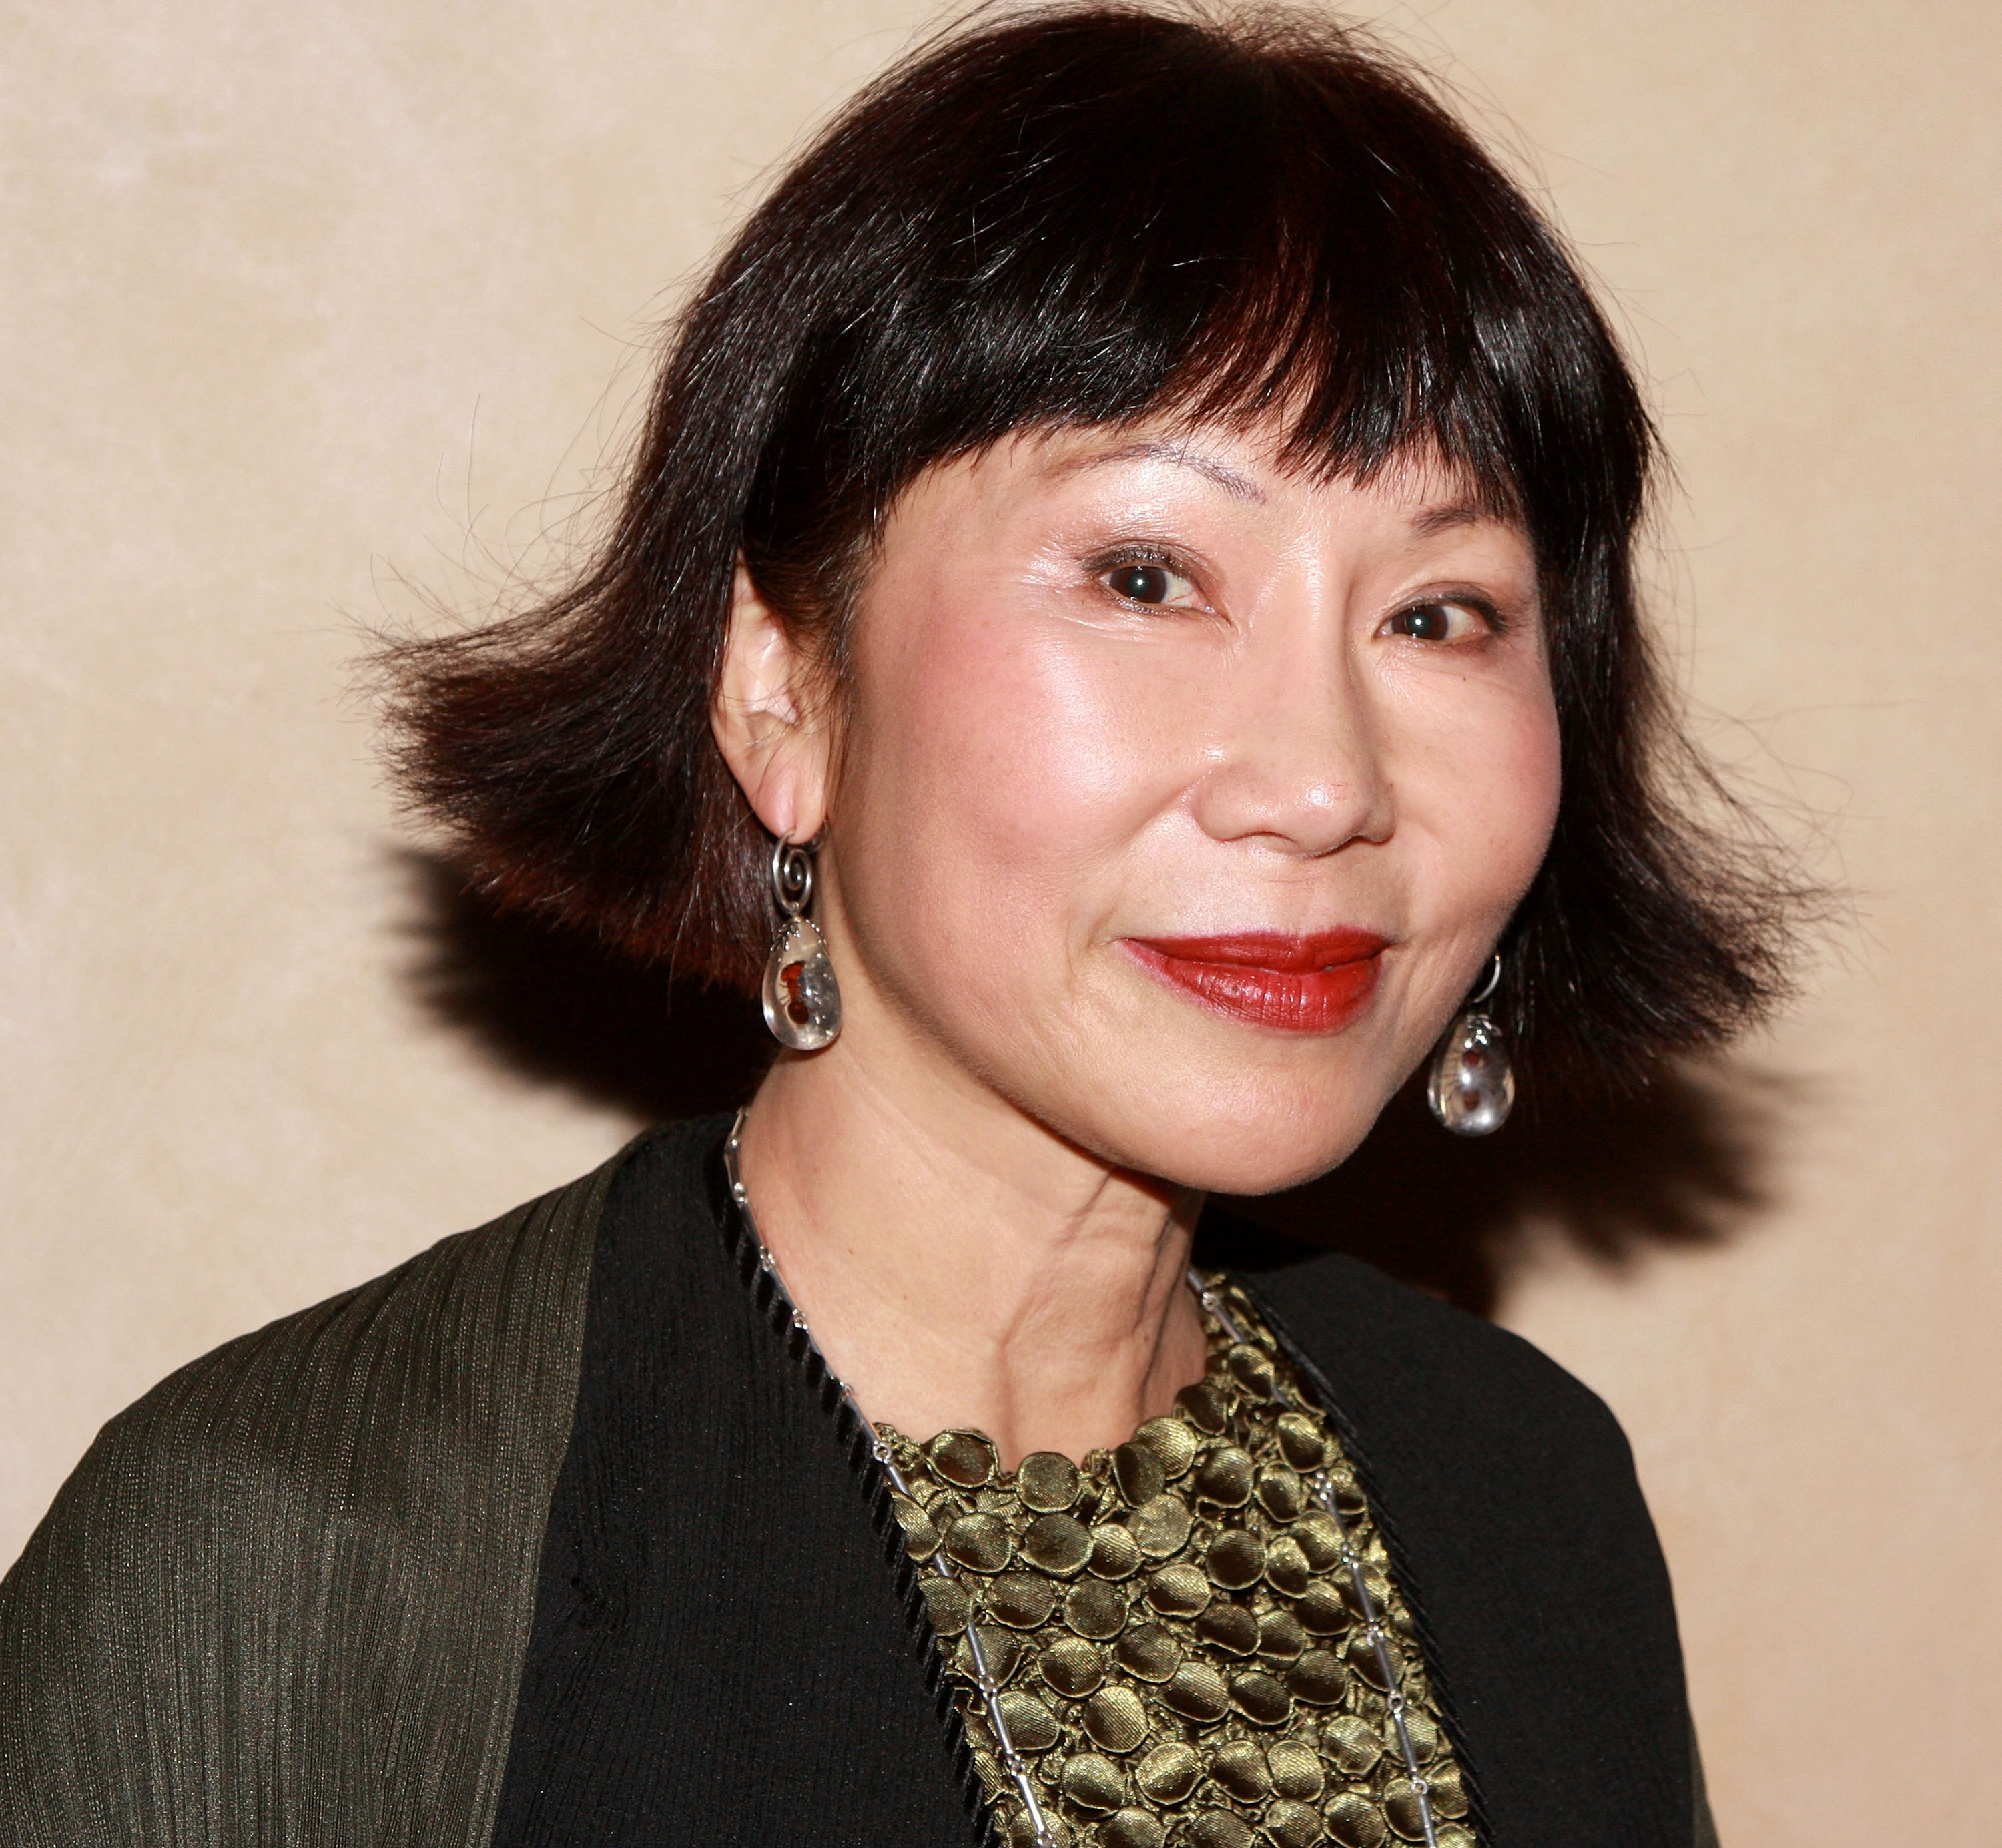 amy tan richard rodgriguez 4 what do the pieces you read by richard rodriguez, amy tan, and julia alvarez illustrate about the immigrant experience in twentieth-century america how are the children in these works different from their parents us.